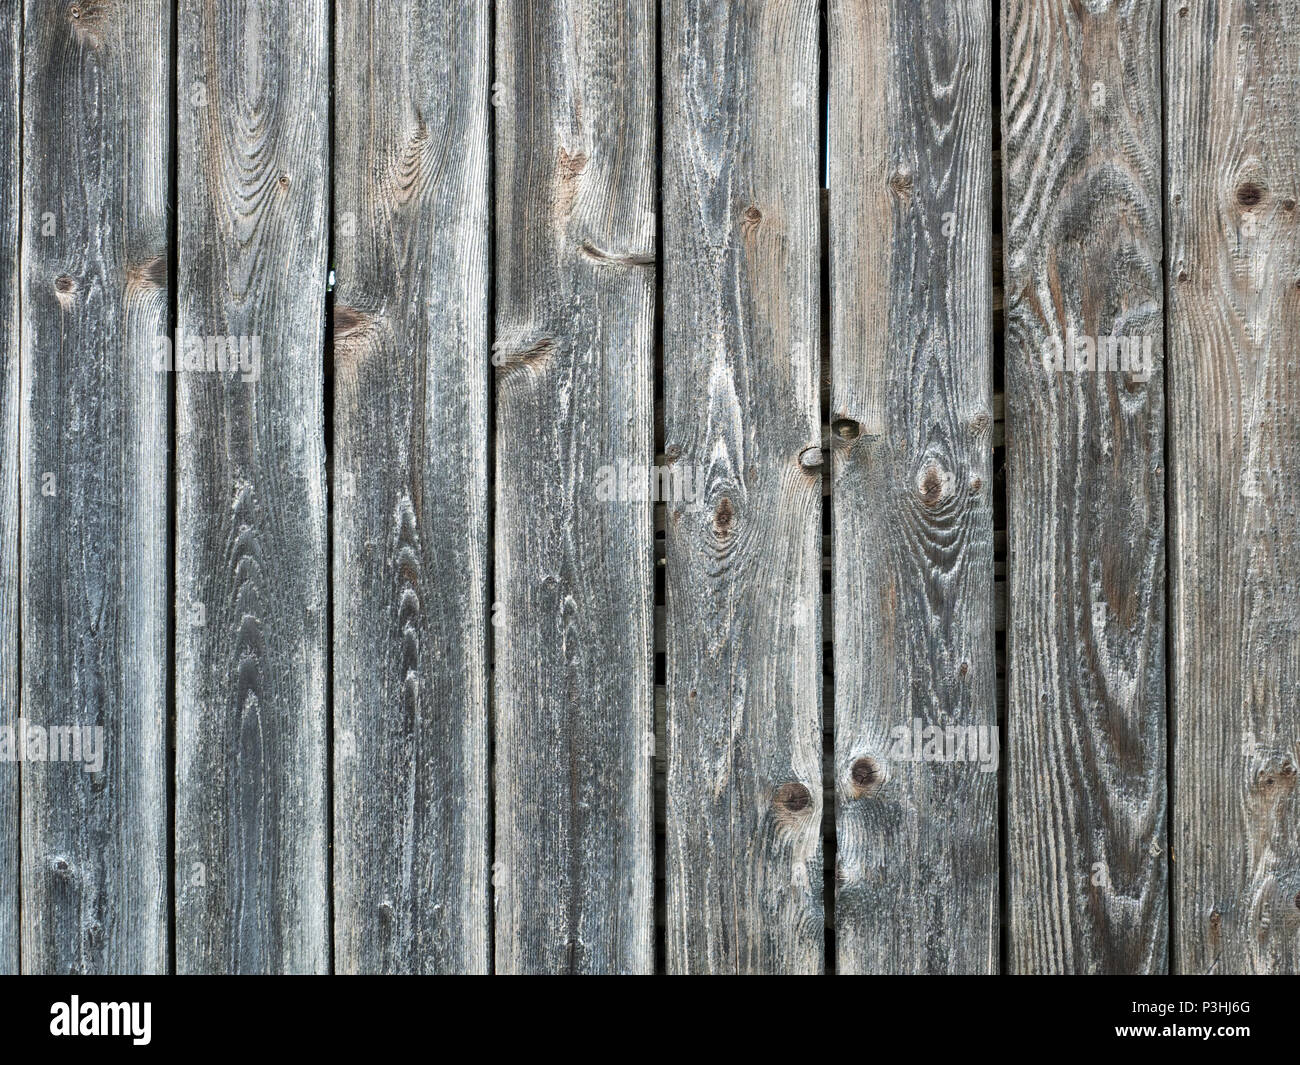 Grey wooden planks background - Stock Image